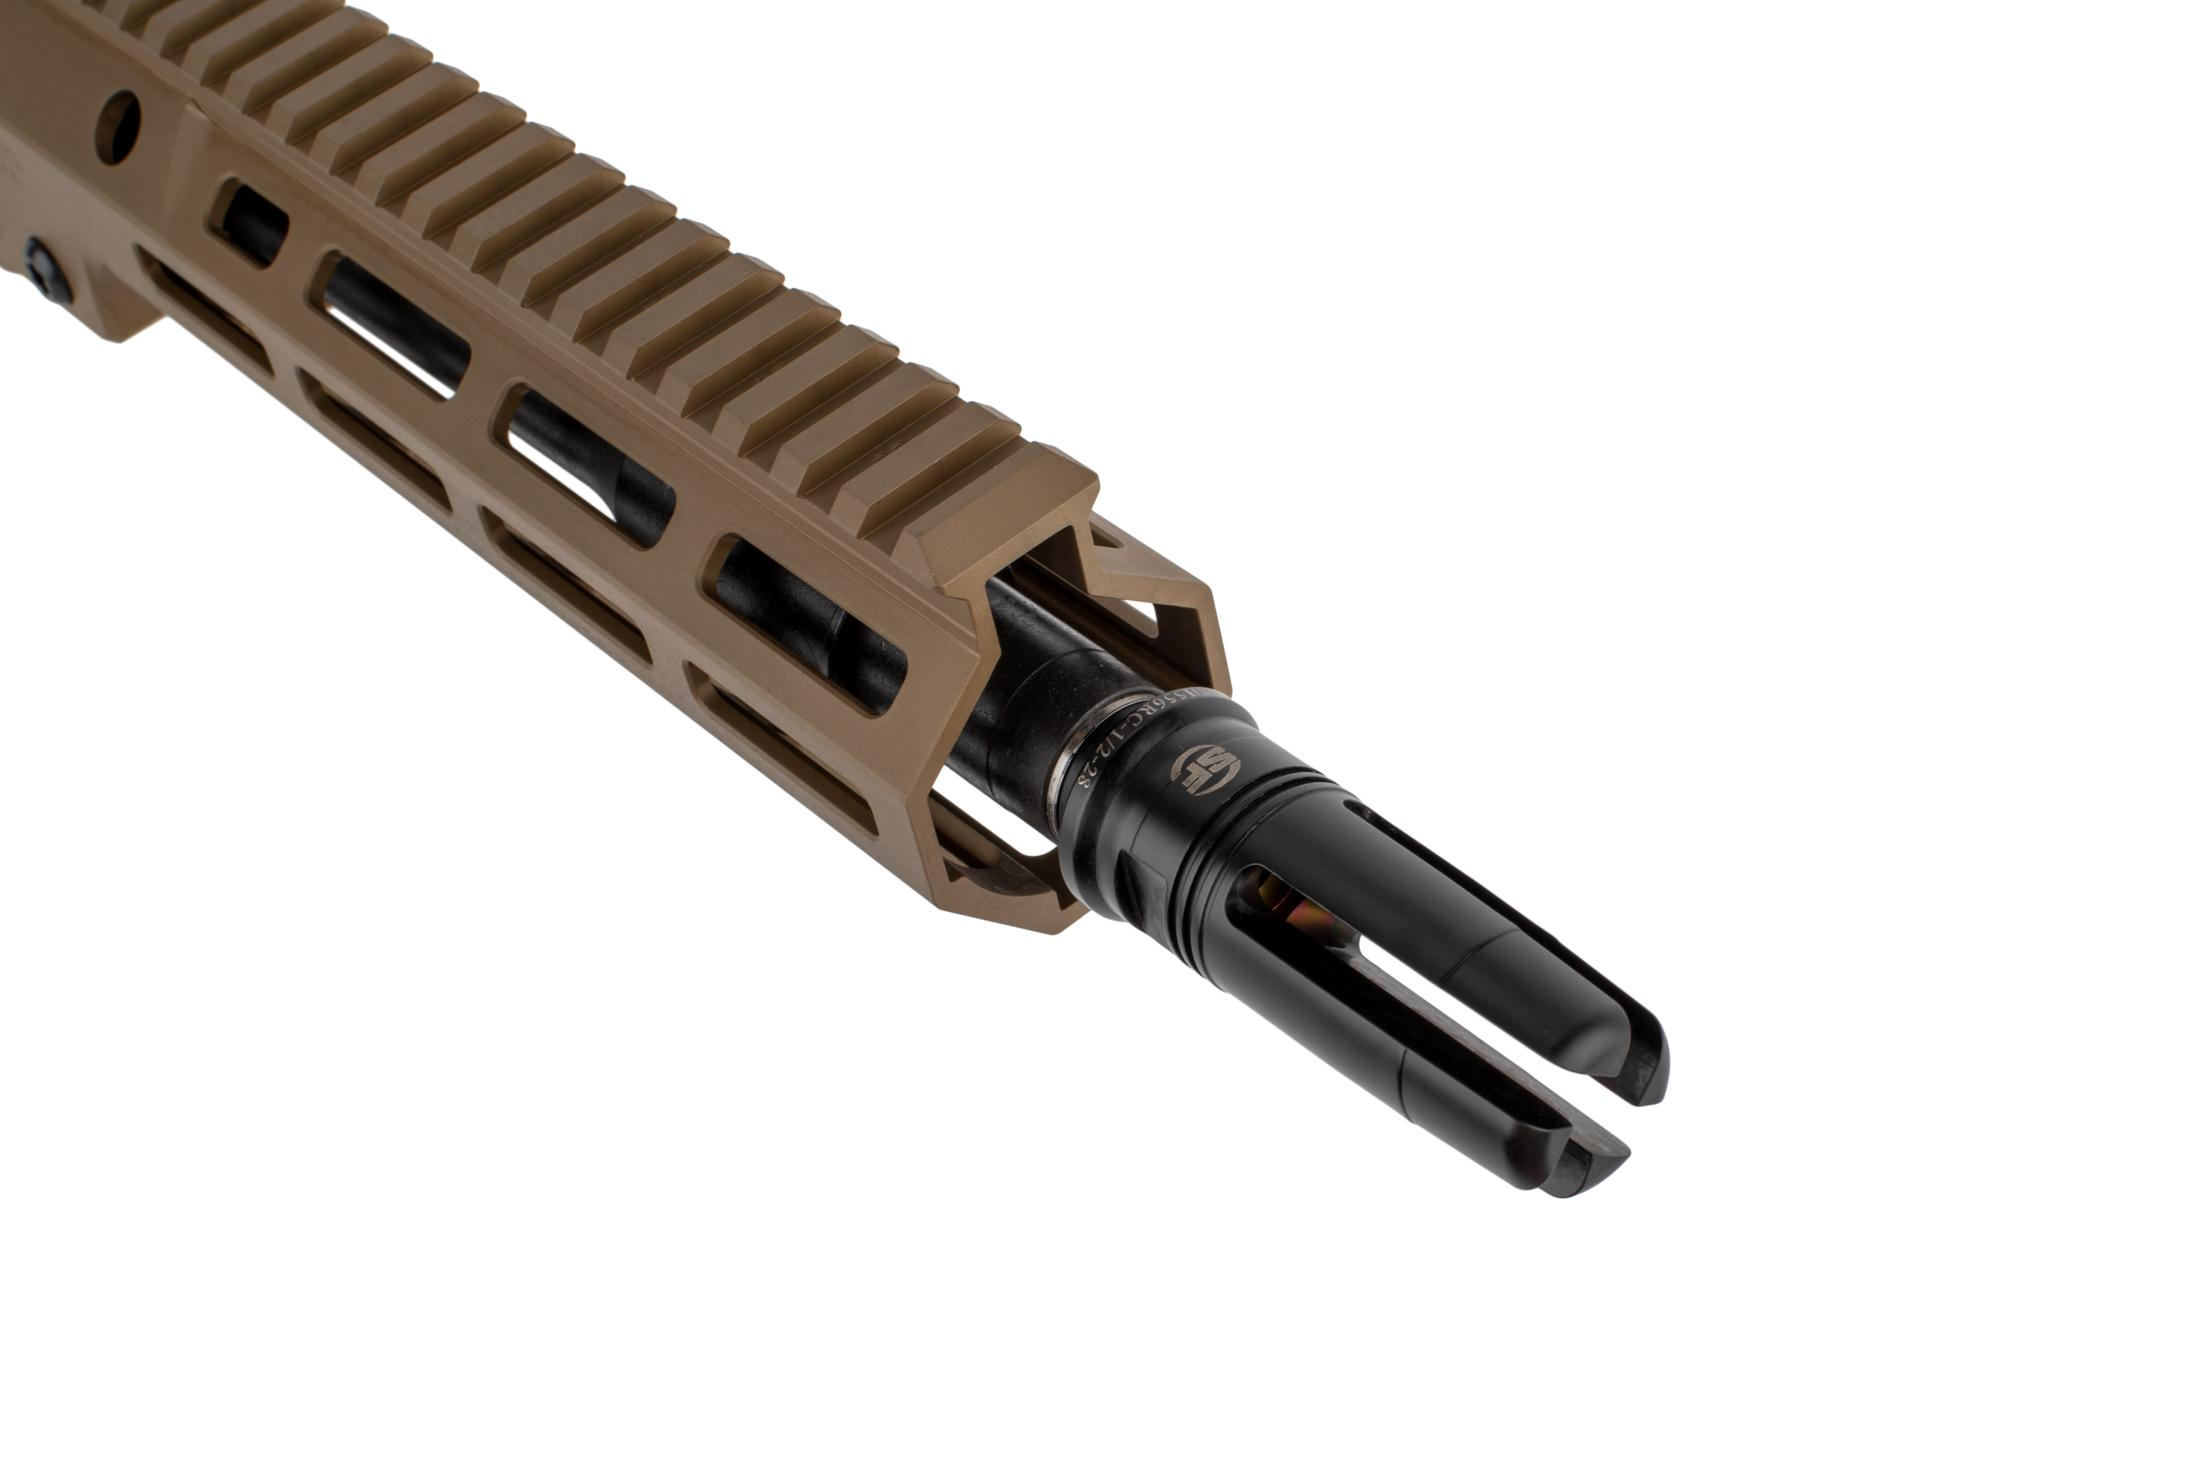 The Geissele Automatics USASOC URGI near clone AR15 complete upper receiver group comes with the SF4P flash hider